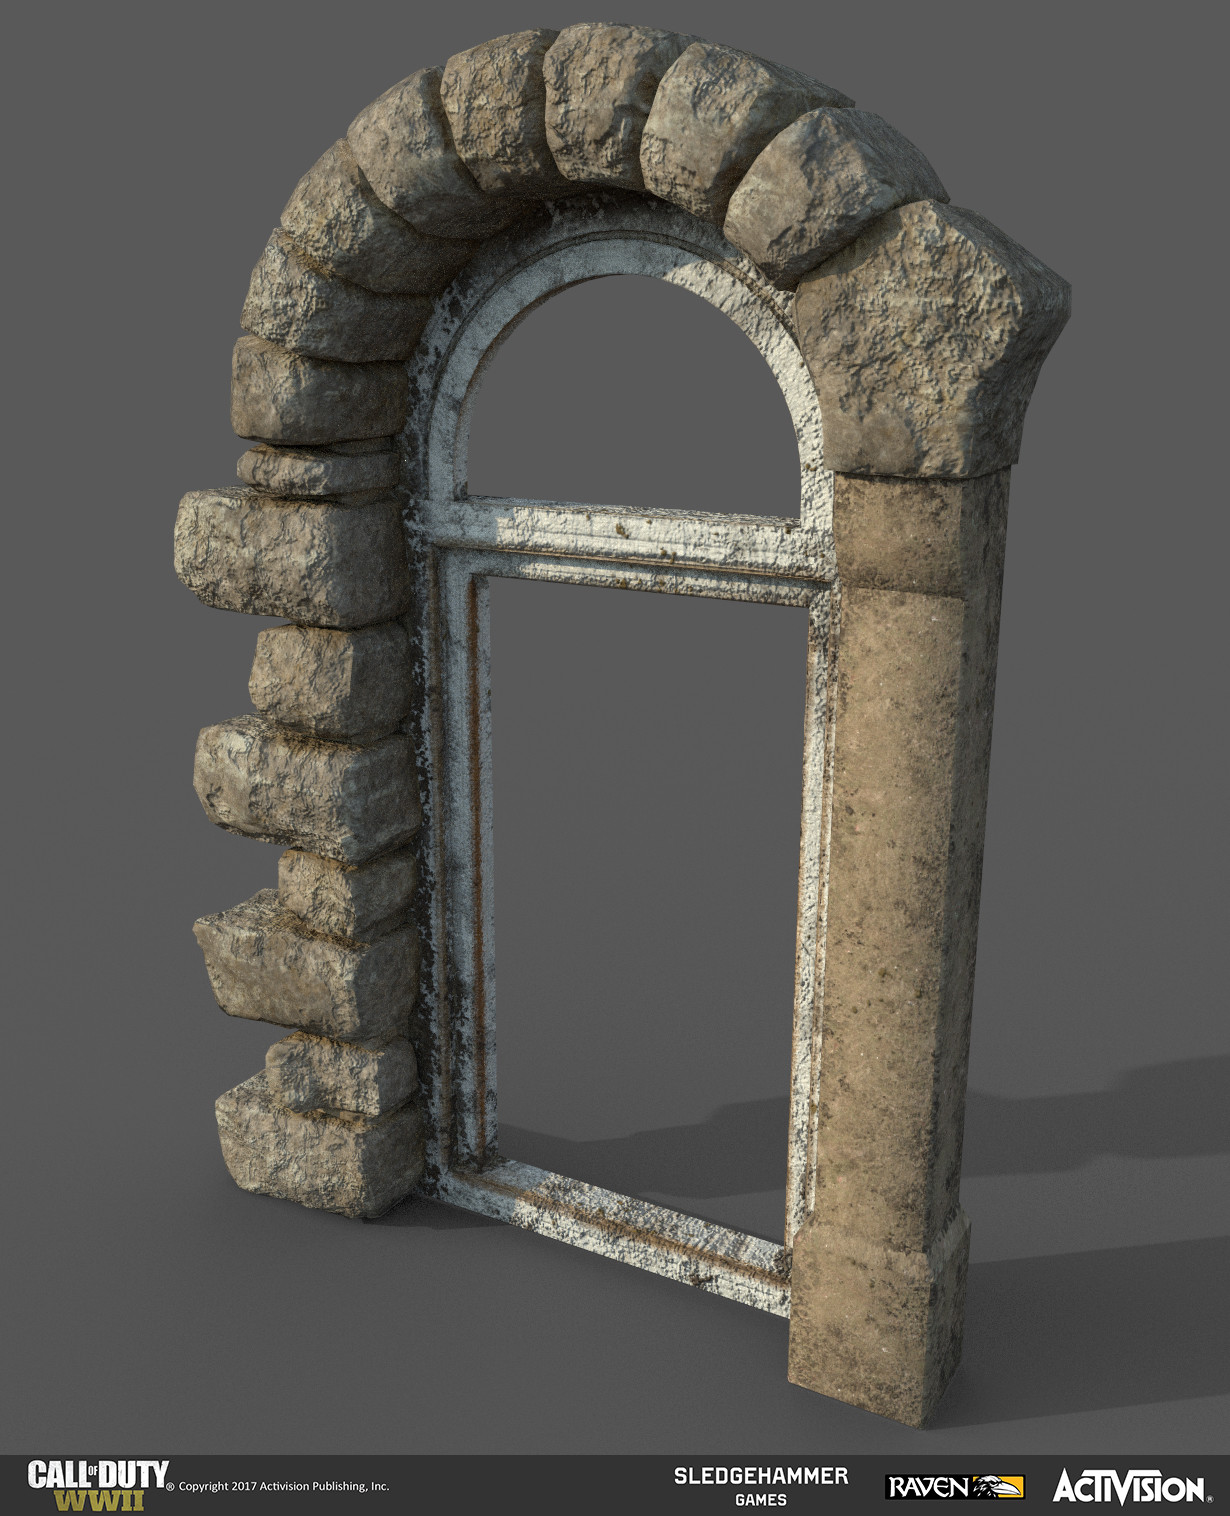 This is one of the modular window models I made for the train station. I created it in 3DSMax and I created the materials for it (along with a burnt variation) in Substance Painter. This image was rendered in Substance Painter.